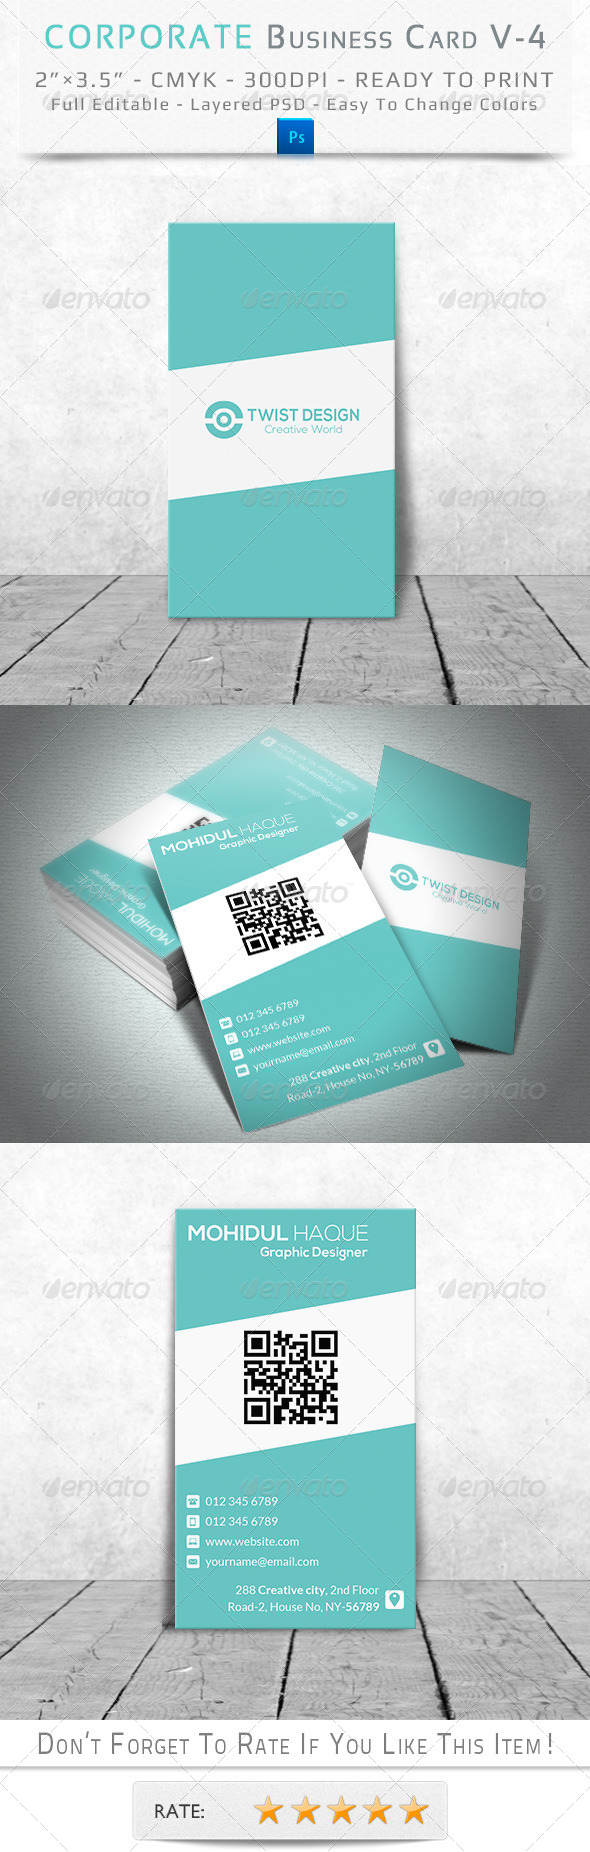 GraphicRiver Corporate Business Card V-4 8498200